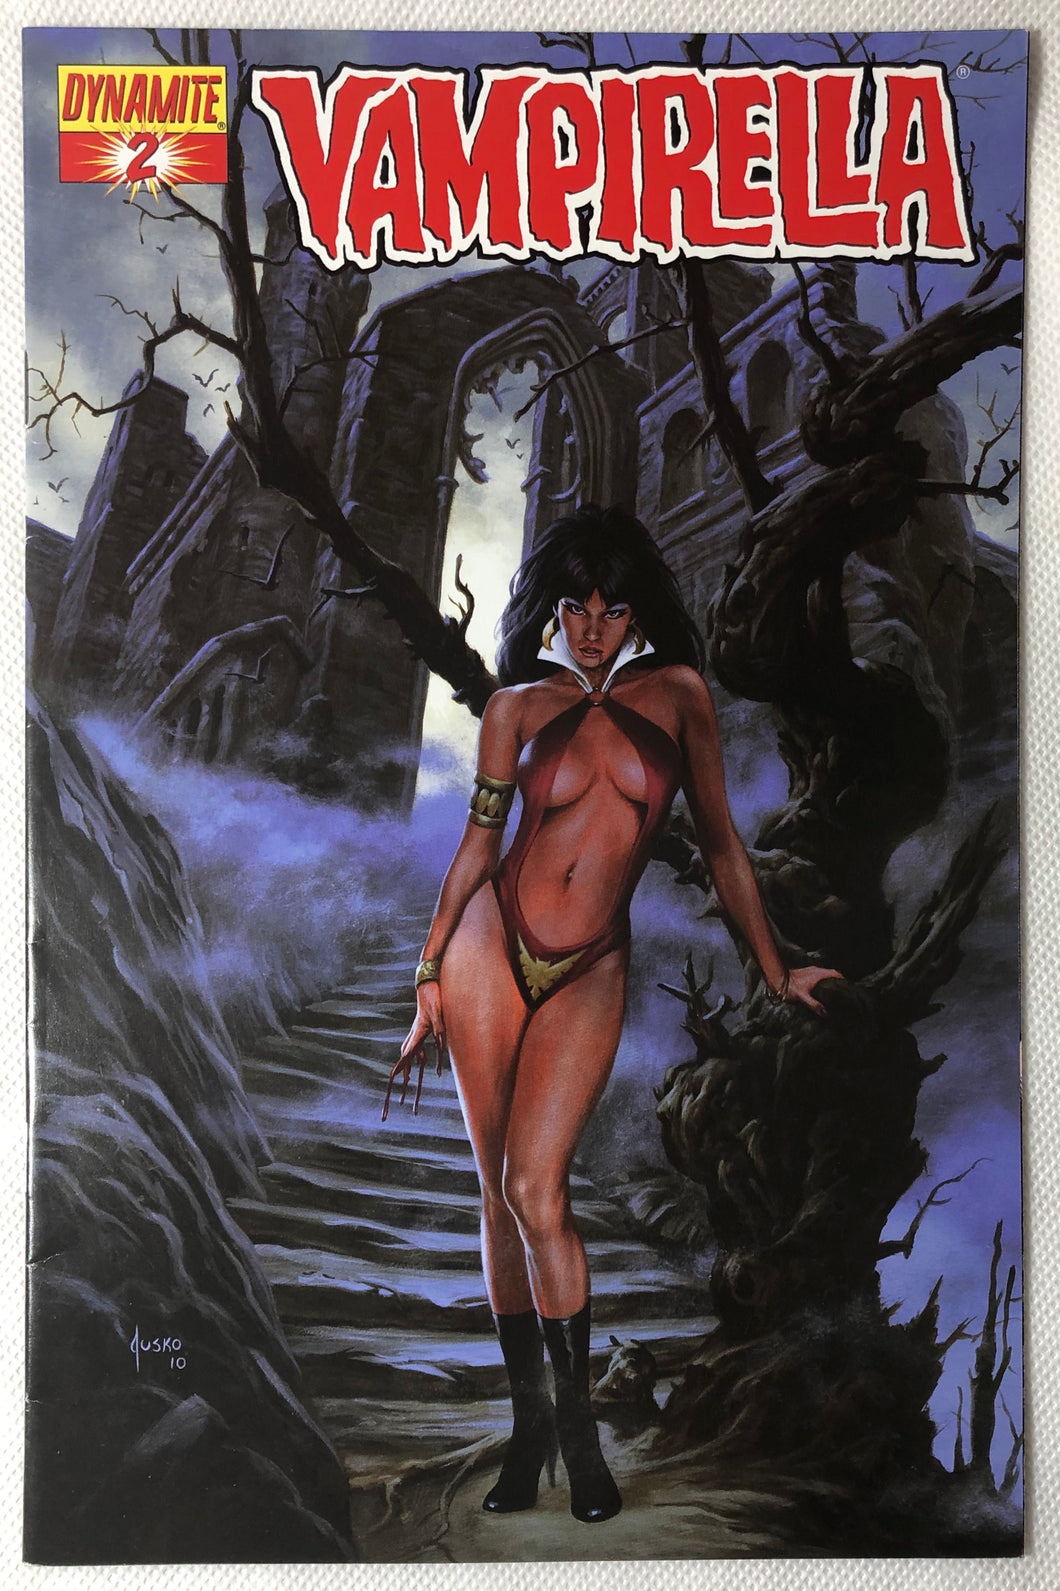 🧛🏻‍♀️ Vampirella #2 Jusko Variant - Demize Collectibles LTD